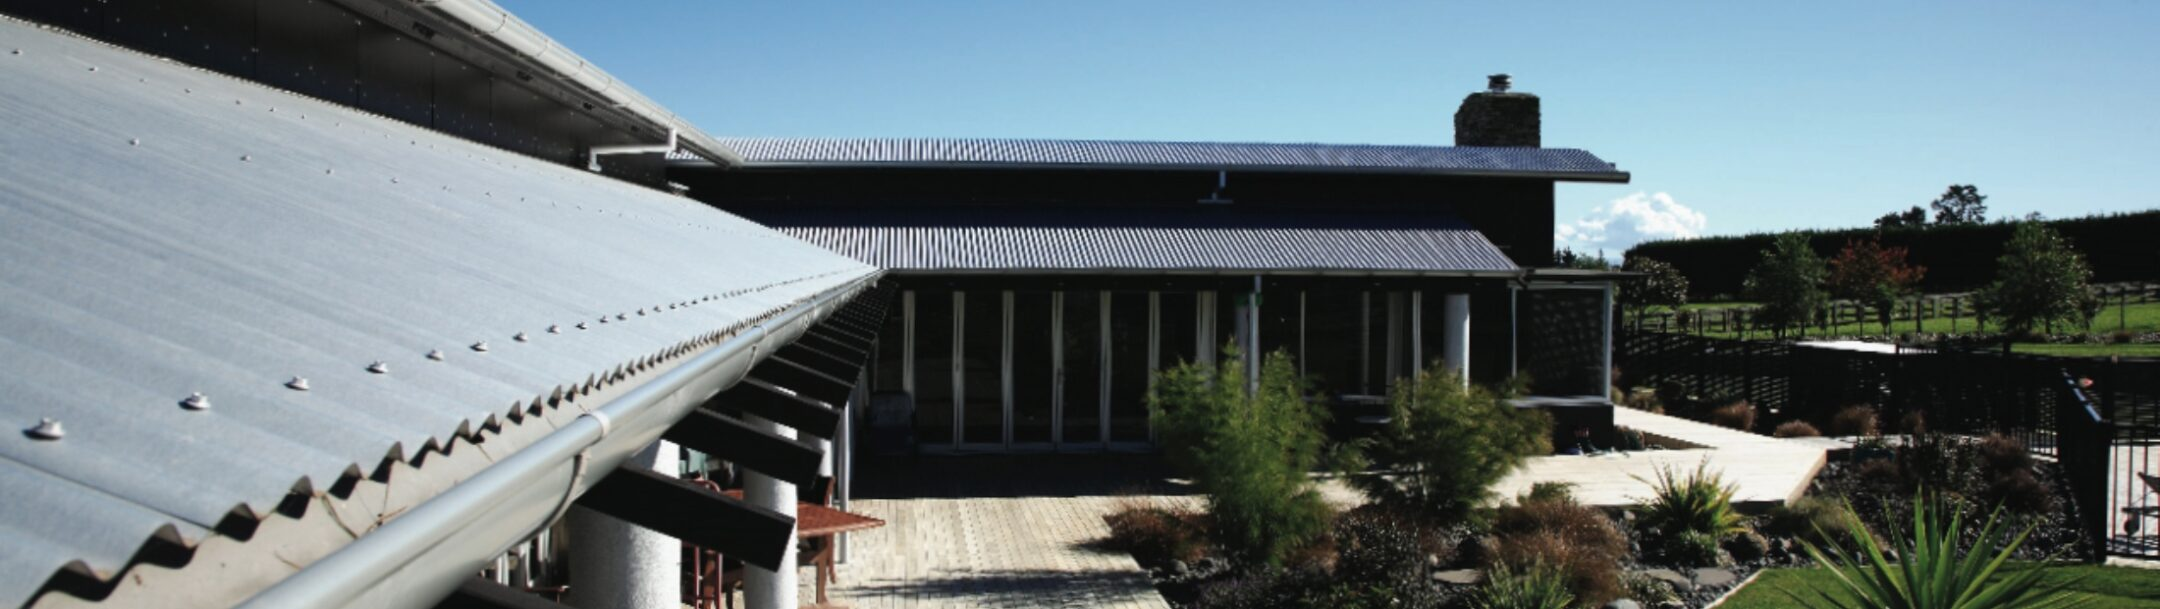 Colorsteel Roofing Products